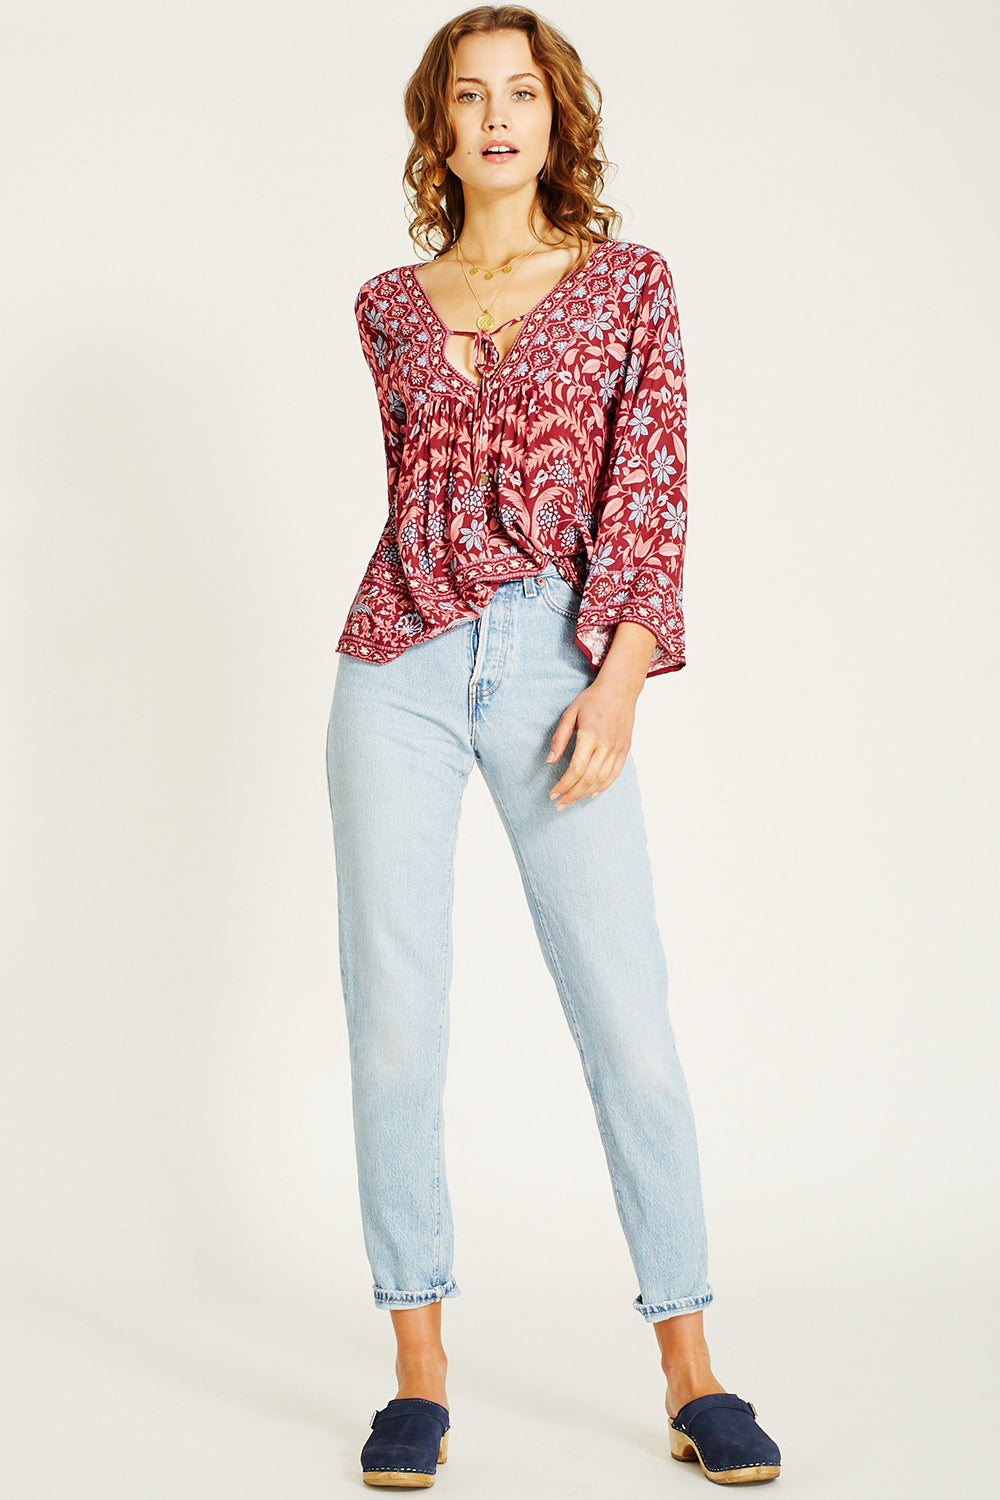 Marigold Blouse in Rhubarb